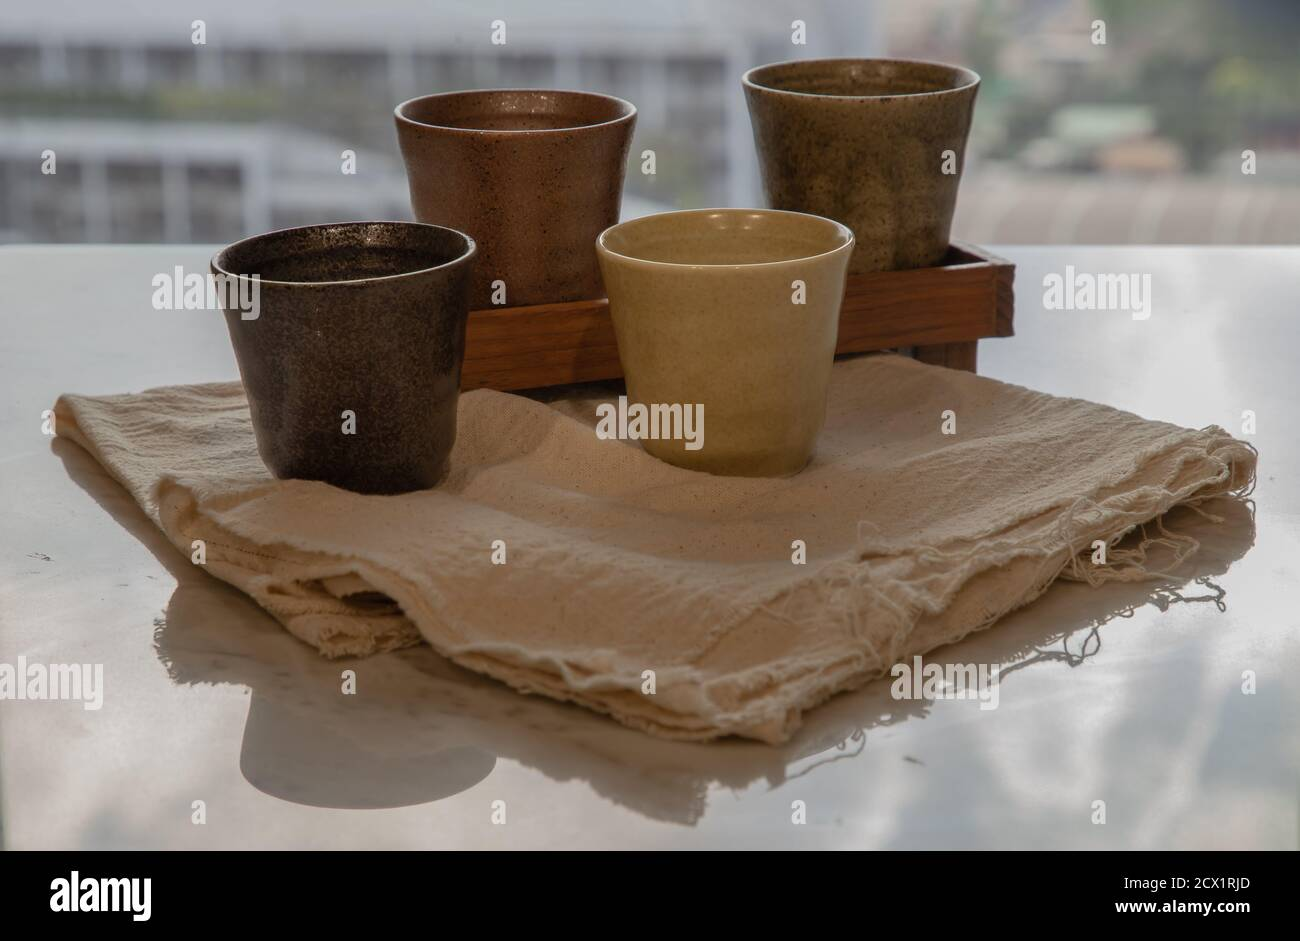 Four Ceramics Mugs Handmade On Marble Table Of Living Room And City View Home Decor Space For Text No Focus Specifically Stock Photo Alamy